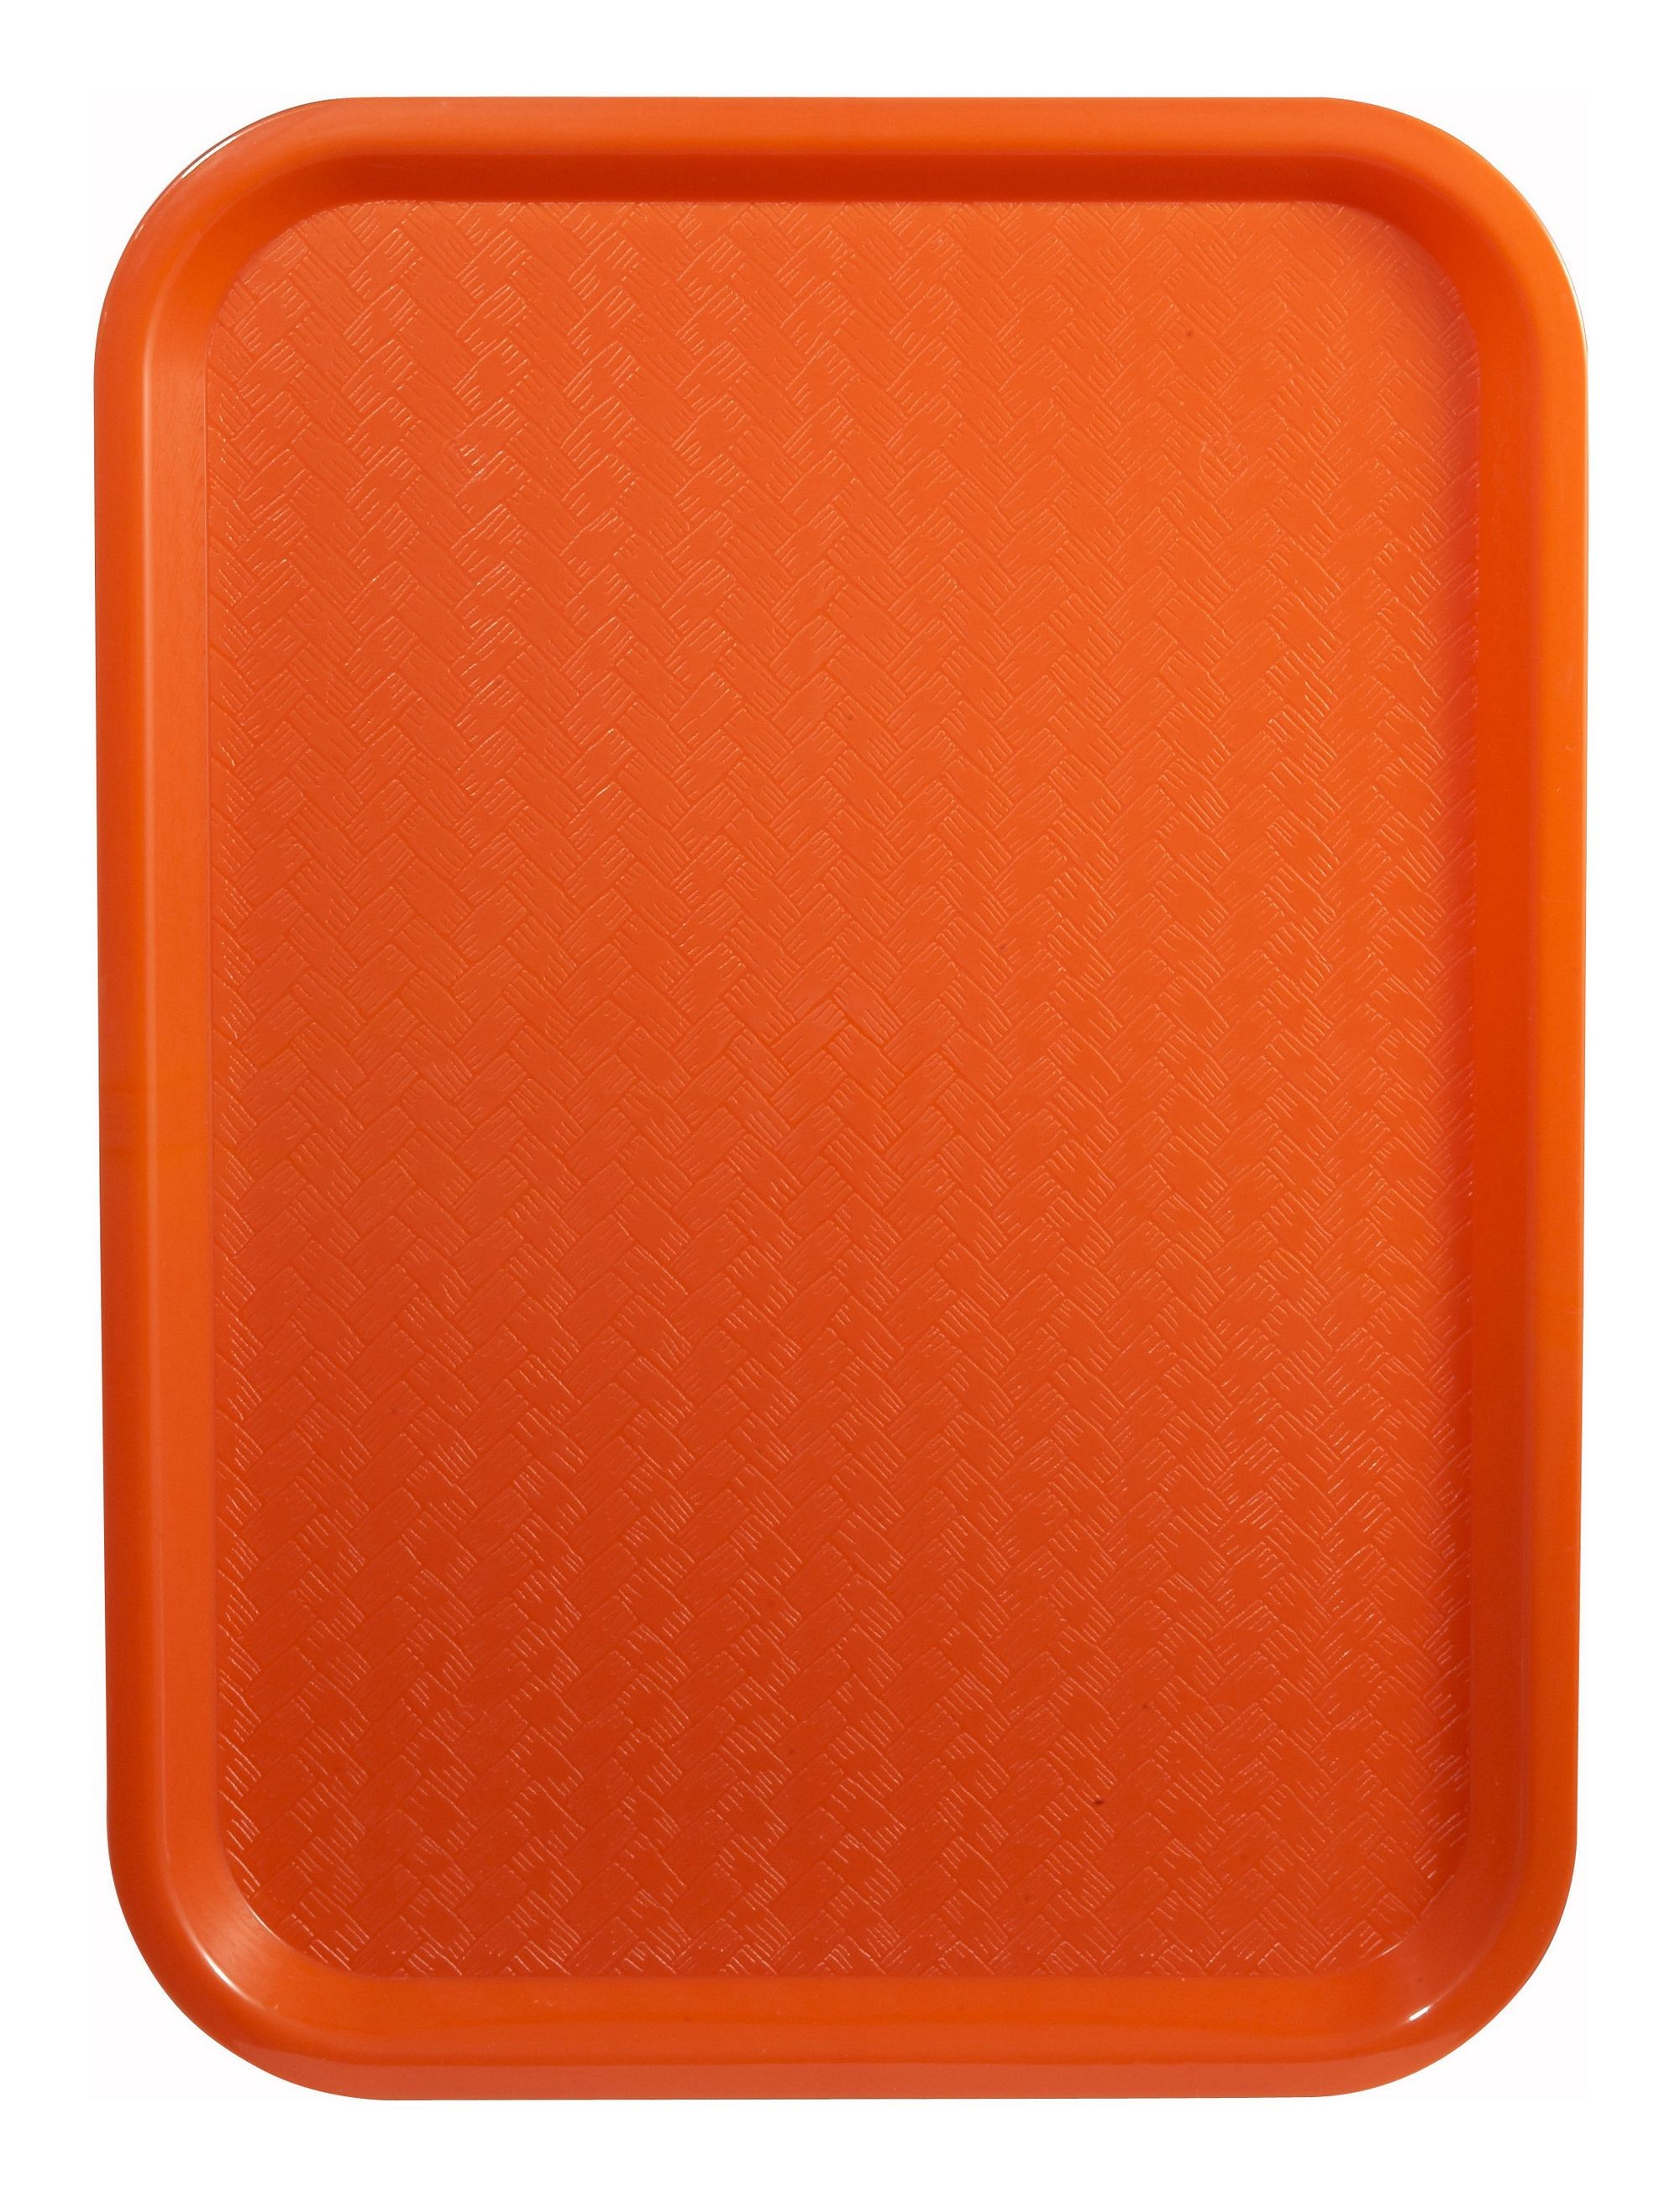 Premium Plastic Fast Food Tray 14 x 18 (Orange)